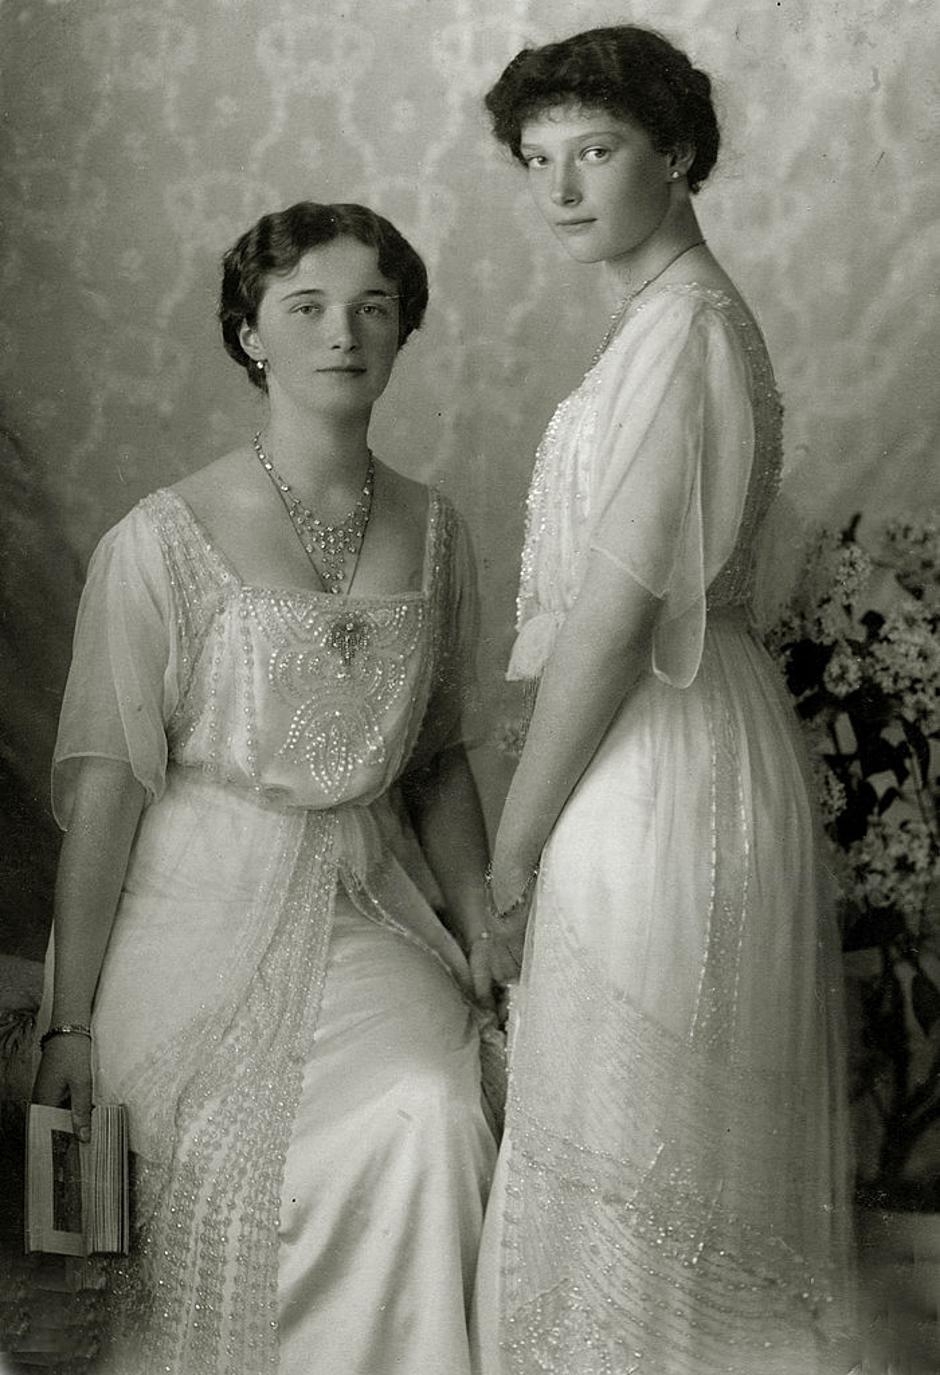 Russian Royalty, pic: circa 1914, The Grand Duchess Olga, left, with her sister the Grand Duchess Tatiana, the daughters of Tsar Nicholas II | Autor: Popperfoto